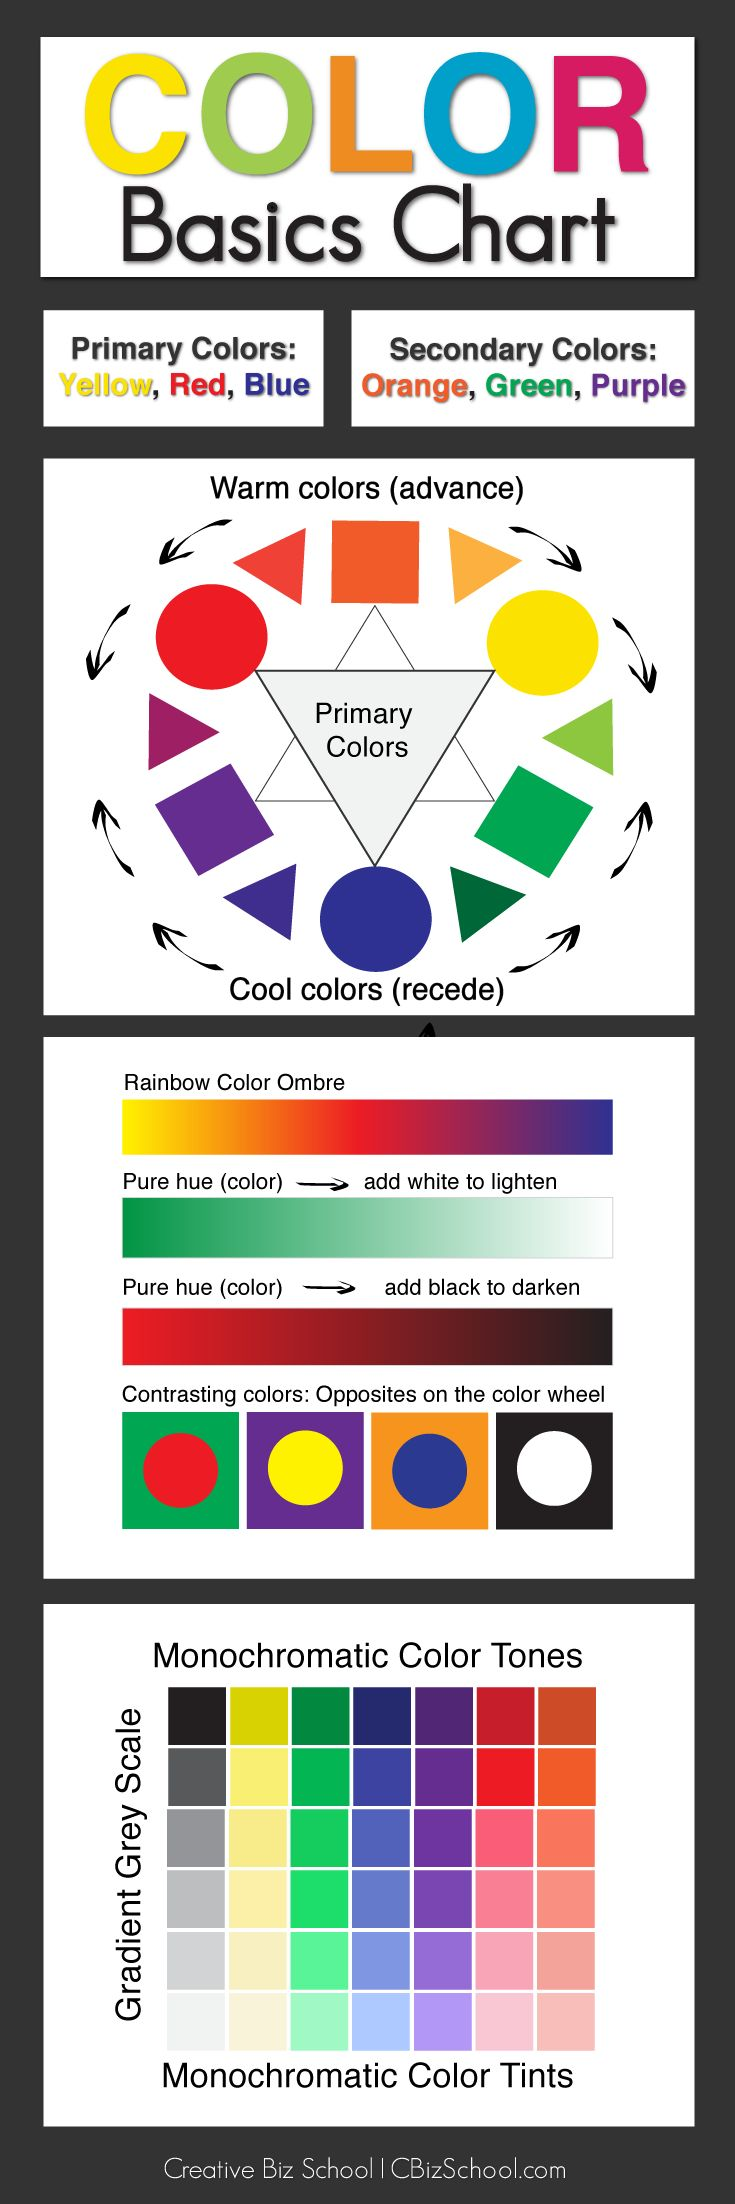 Colors Feelings Chart 198 best color:tools & information images on pinterest | art